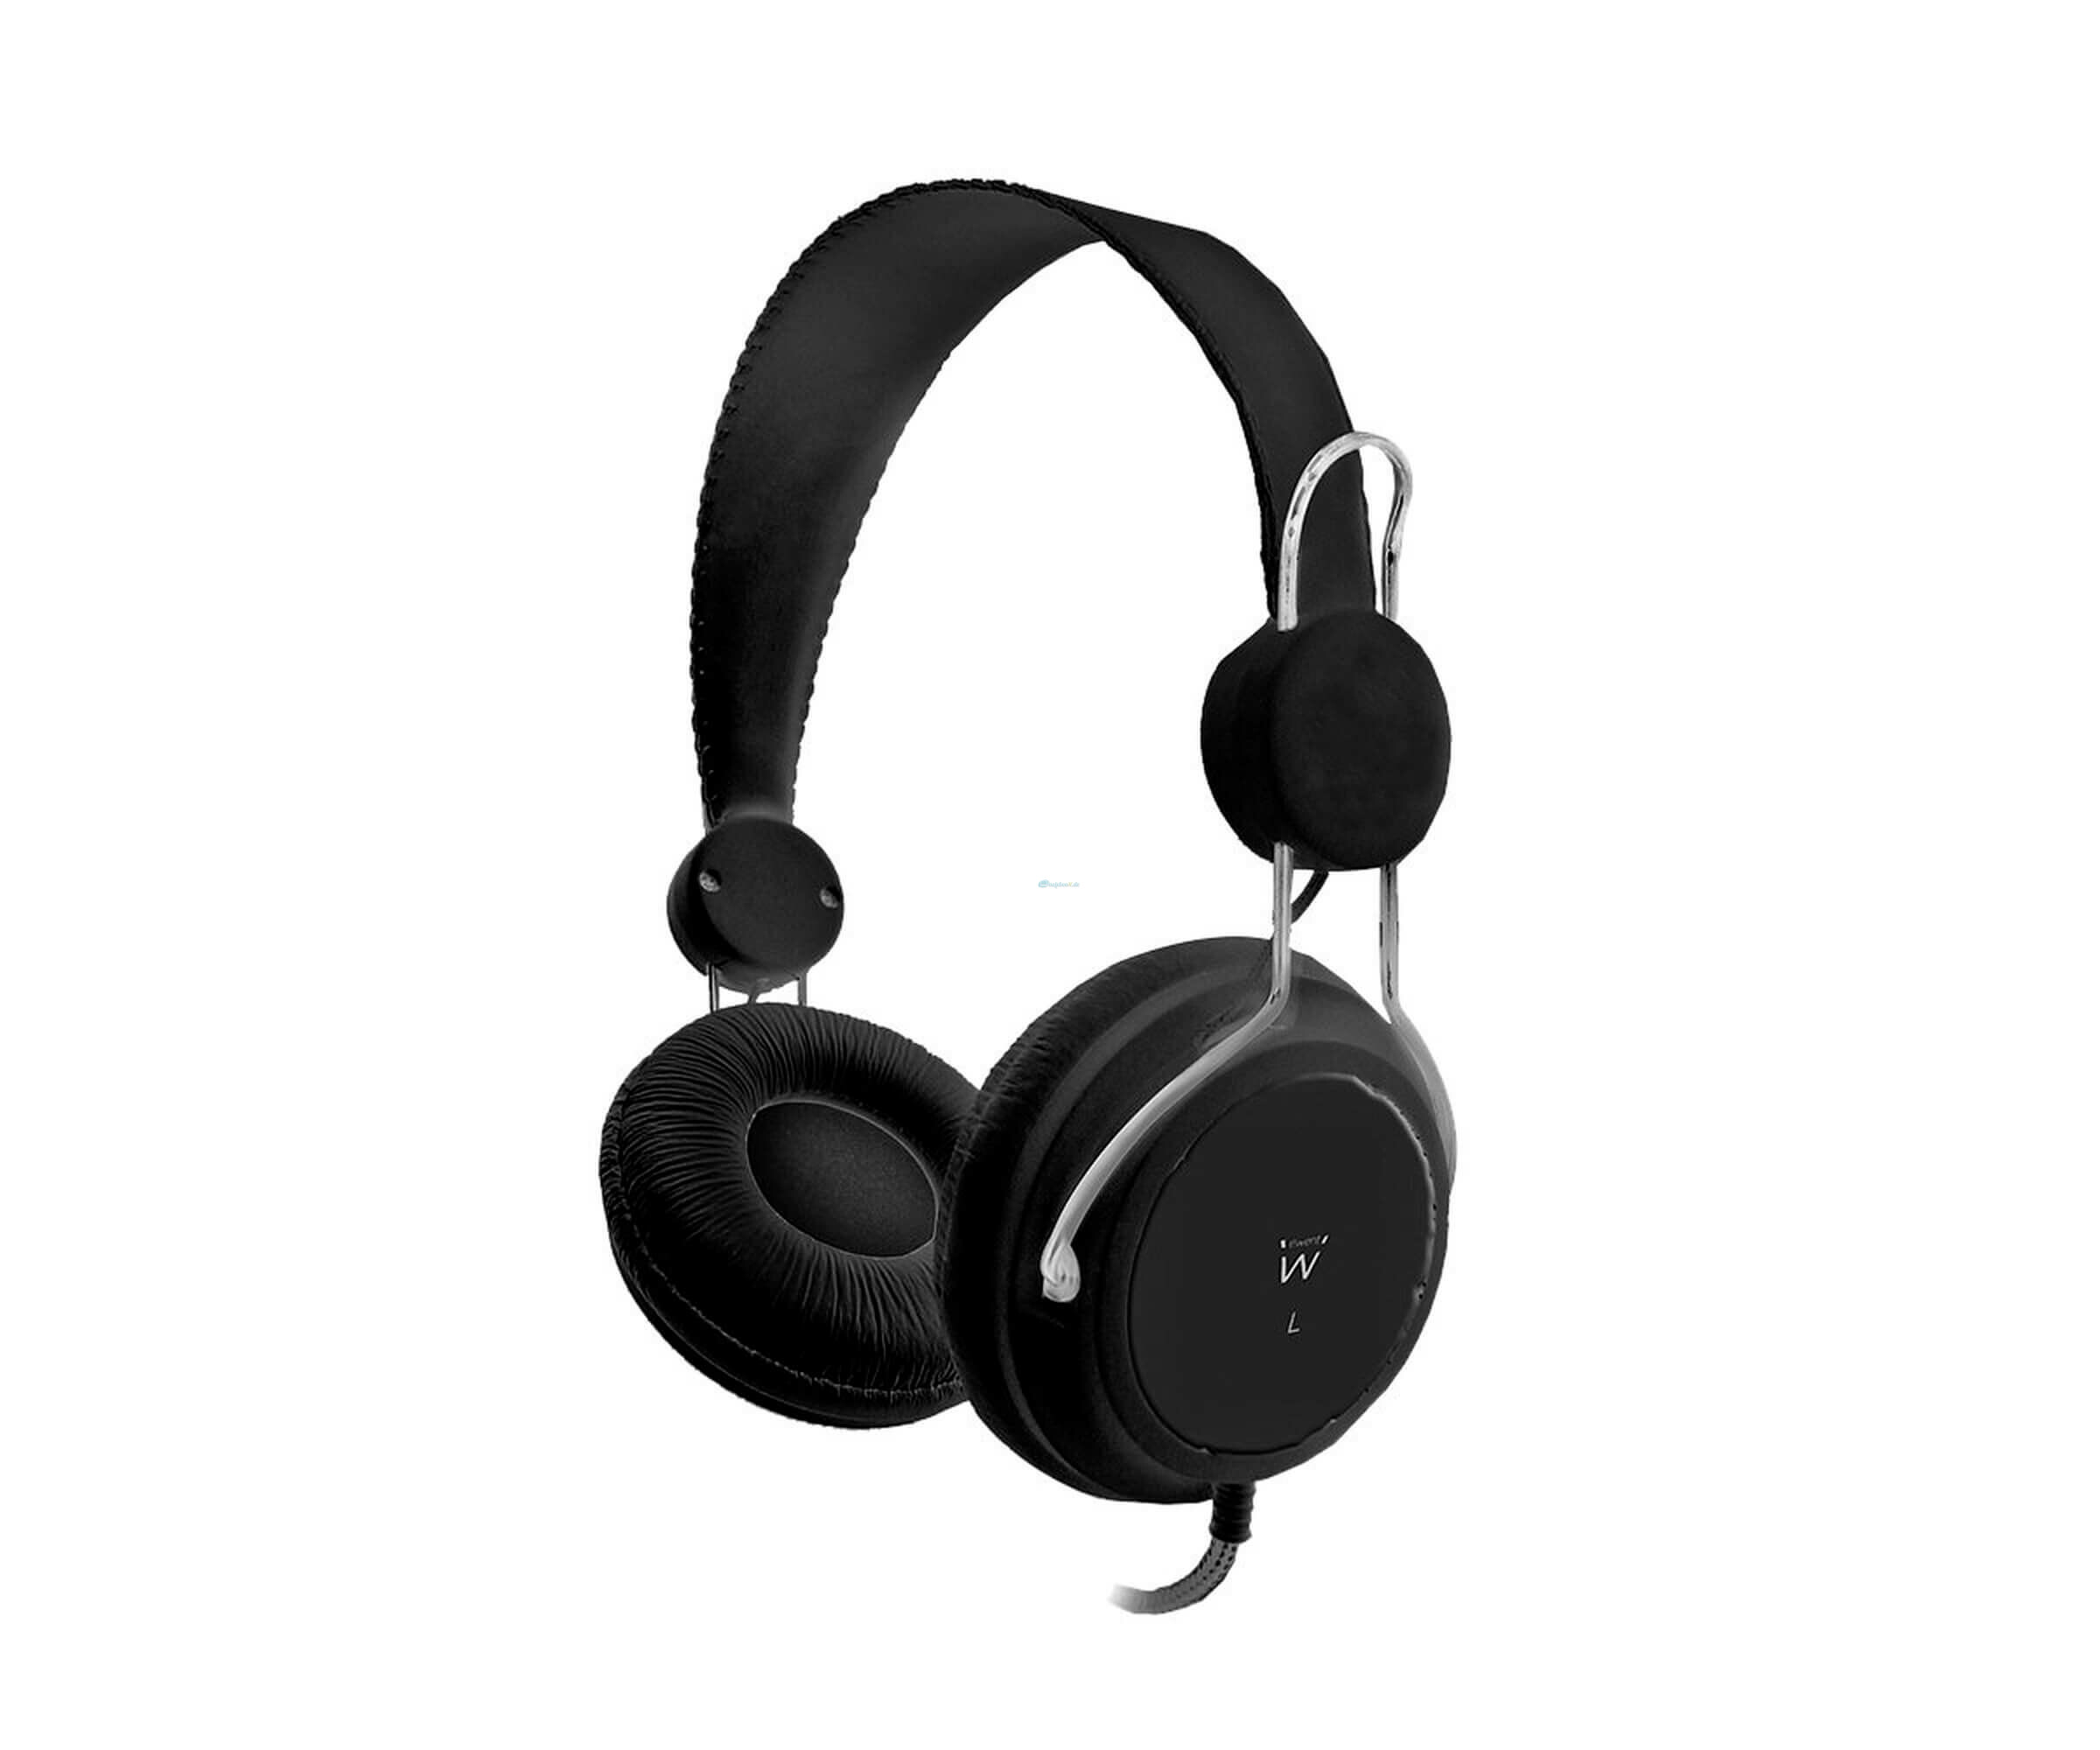 Ewent - EW3577 - Head Phones - On-Ear Kopfhörer - schwarz